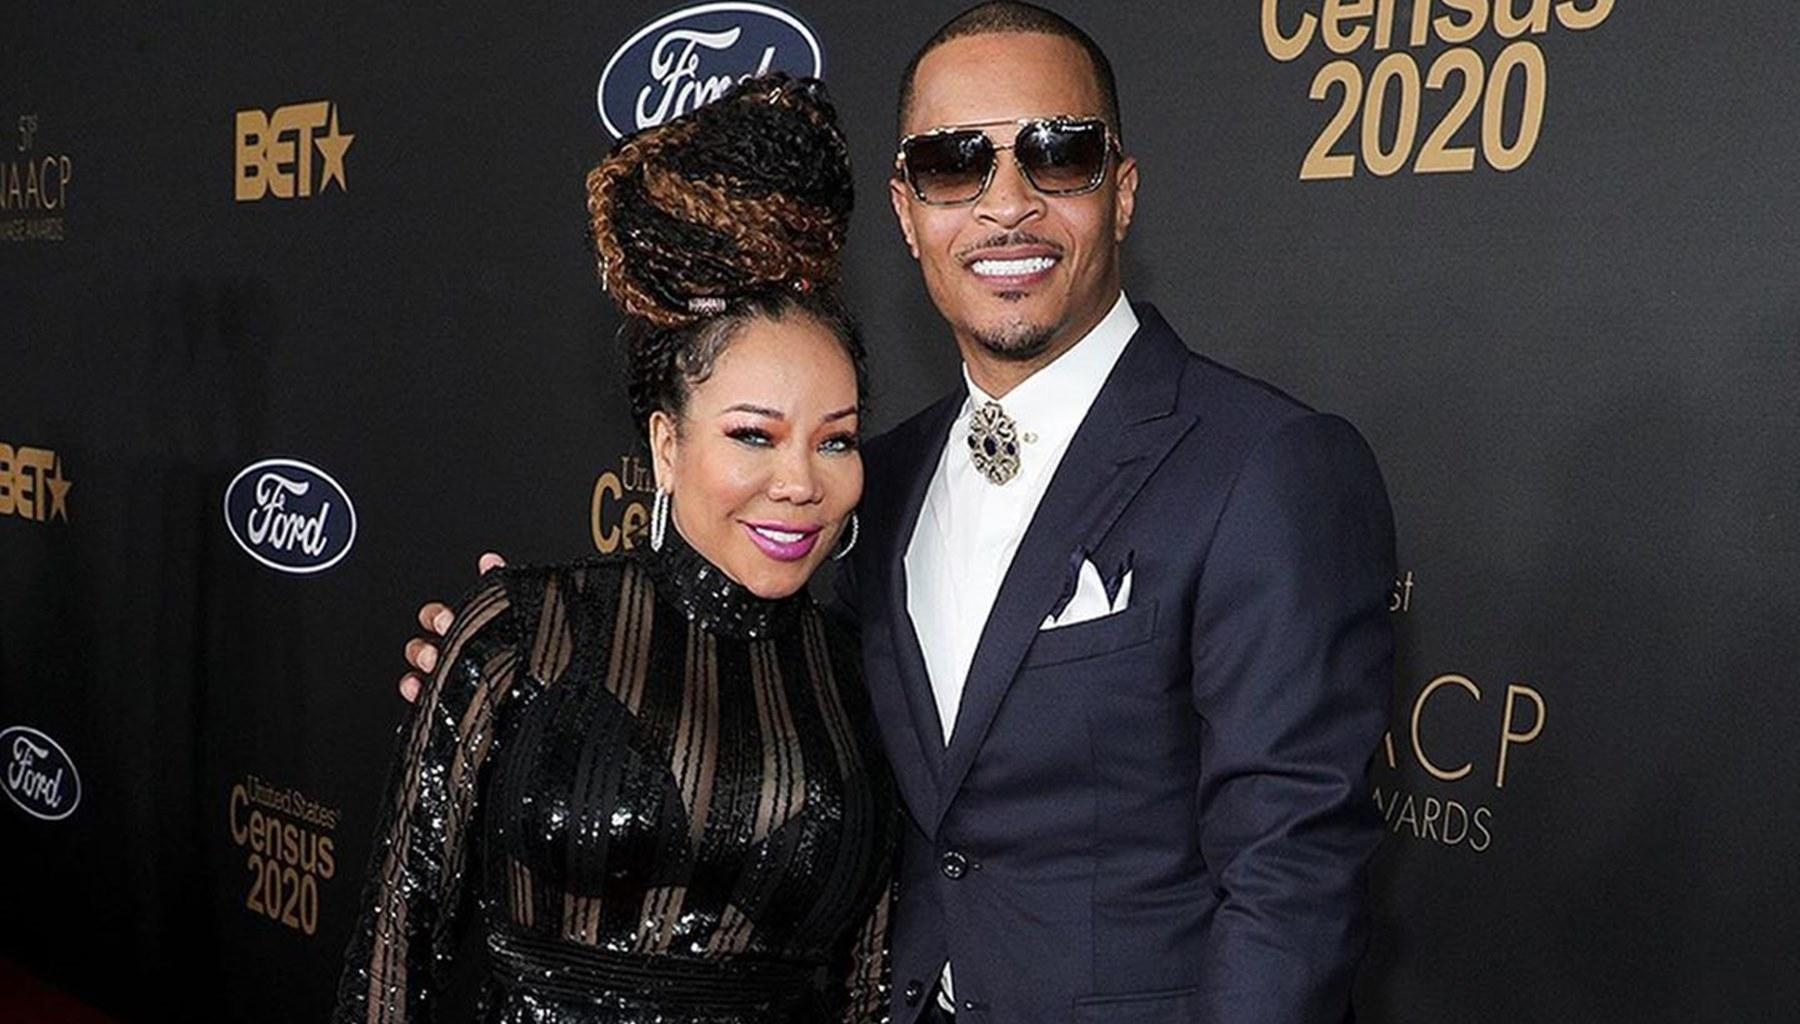 T.I. And His Wife, Tiny Harris, Are Blossoming In Love In New Video, But They Are No Match For This Pretty Superstar -- Rihanna Made Things Very Special